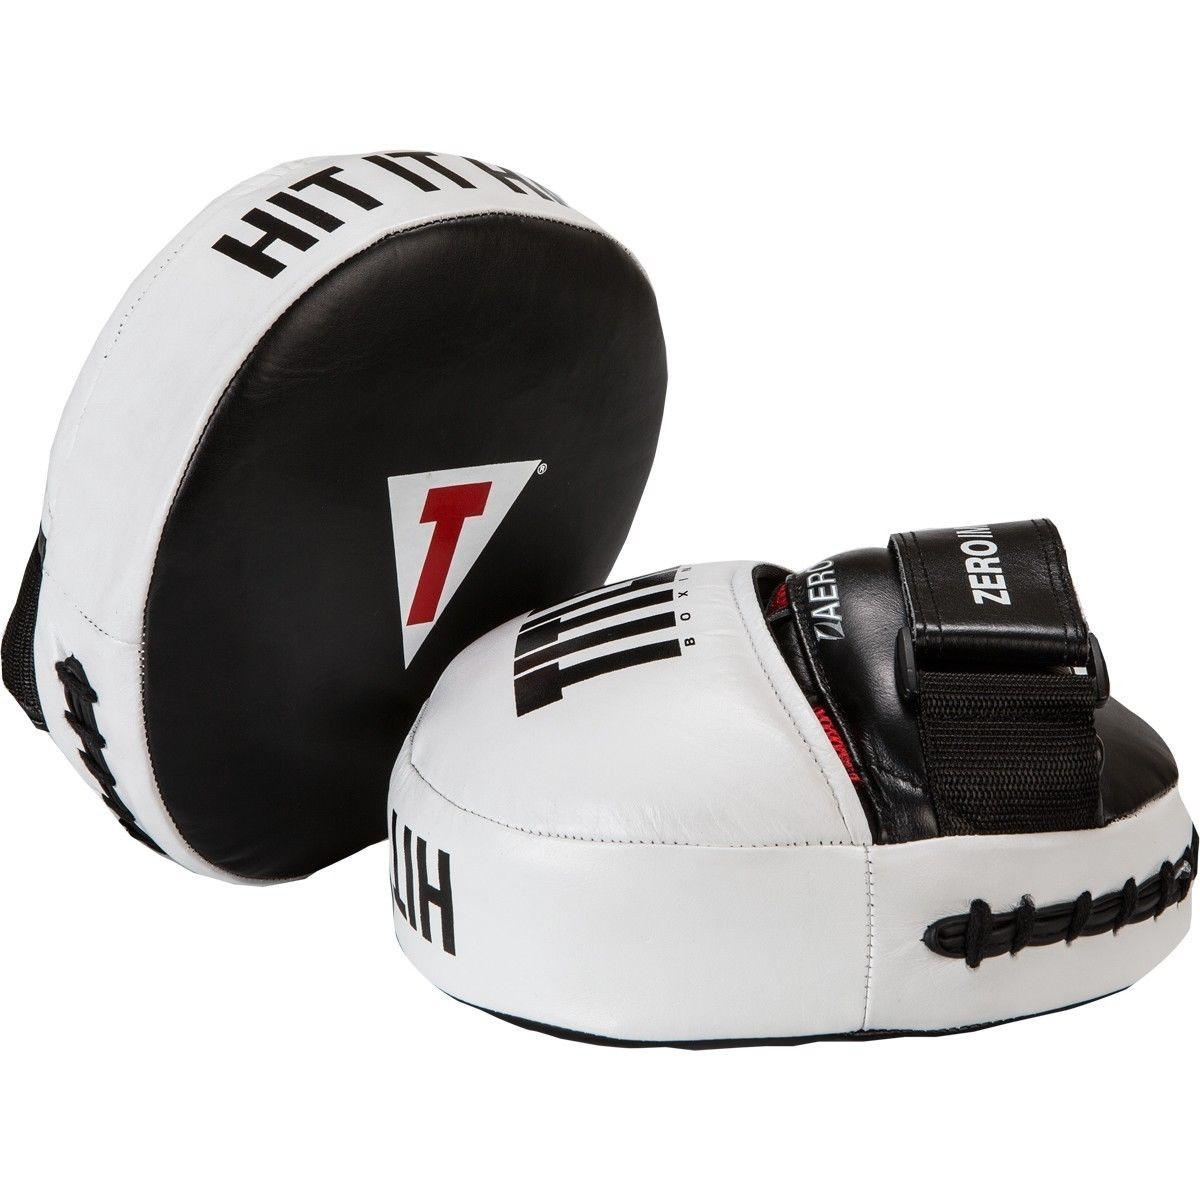 TITLE Boxing Zero Impact Punch Mitts by